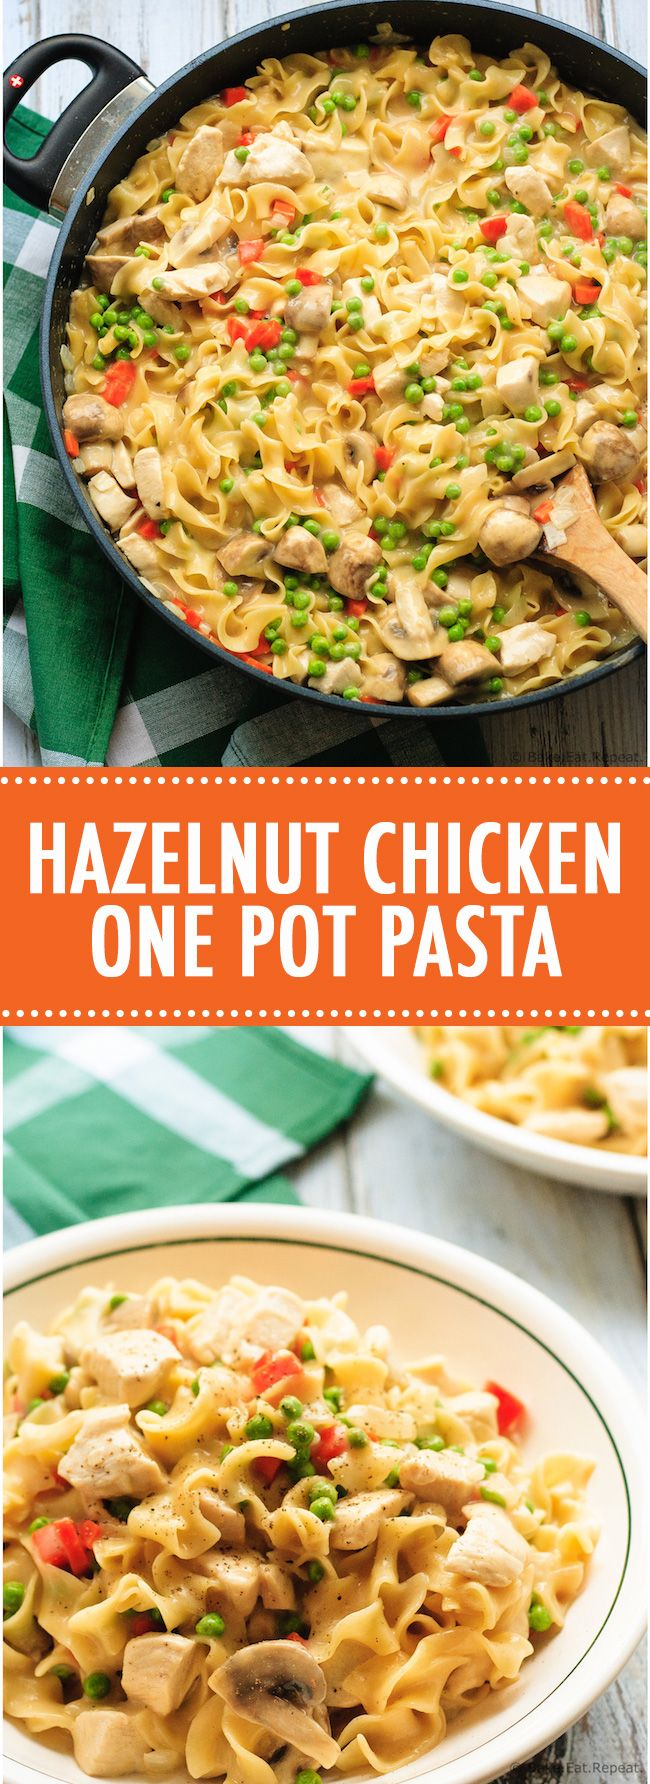 Hazelnut Chicken One Pot Pasta - Hazelnut chicken one pot pasta recipe - an easy meal that is very adaptable and comes together in 30 minutes! Perfect for those busy nights! #30minutethursday